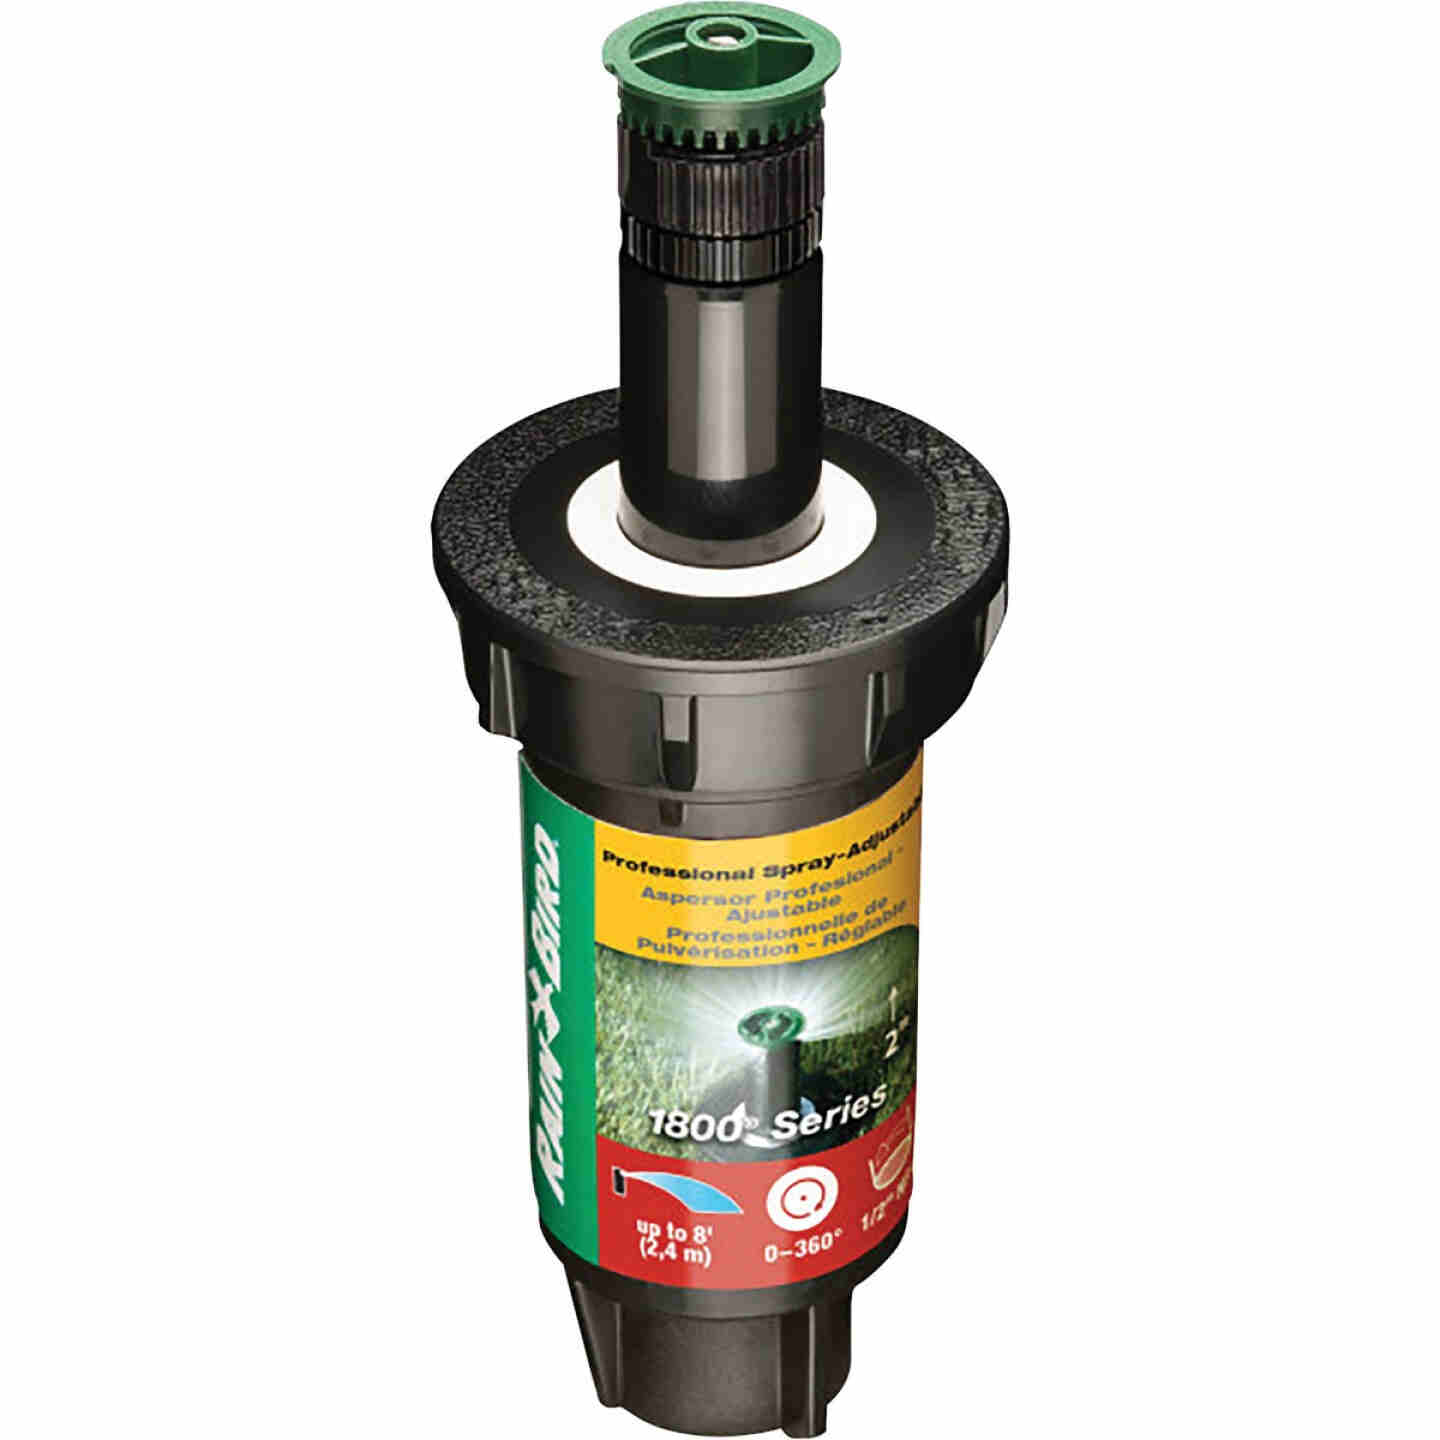 Rain Bird 2 In. Full Circle Adjustable 8 Ft. Rotary Sprinkler with Pressure Regulator Image 1